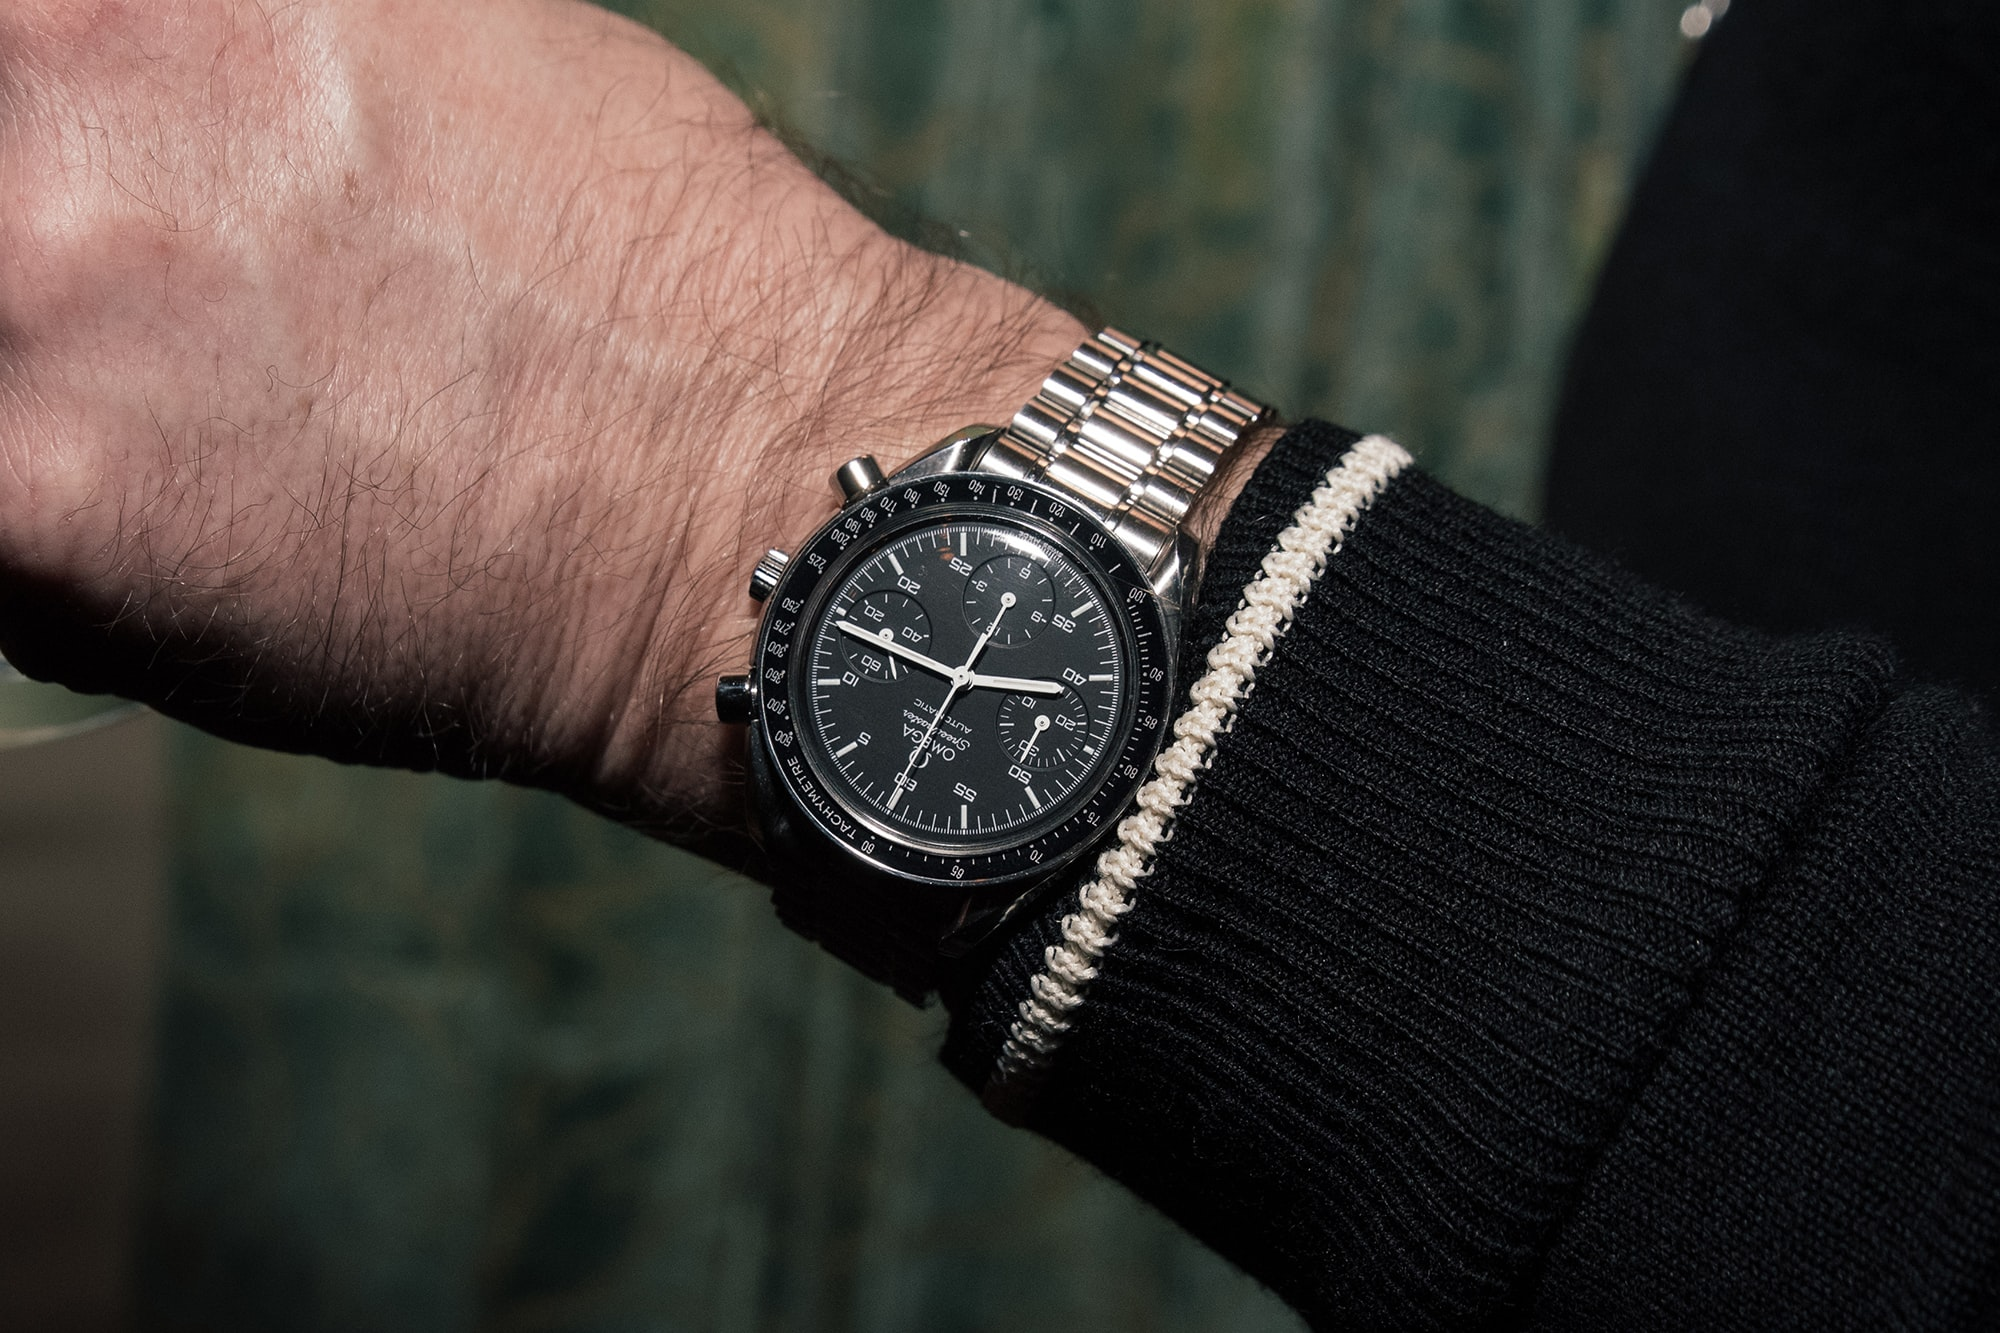 Photo Report: HODINKEE And Omega Celebrate The 60th Anniversary Of The Speedmaster Photo Report: HODINKEE And Omega Celebrate The 60th Anniversary Of The Speedmaster  20170221 OmegaSpeedmaster60th 126